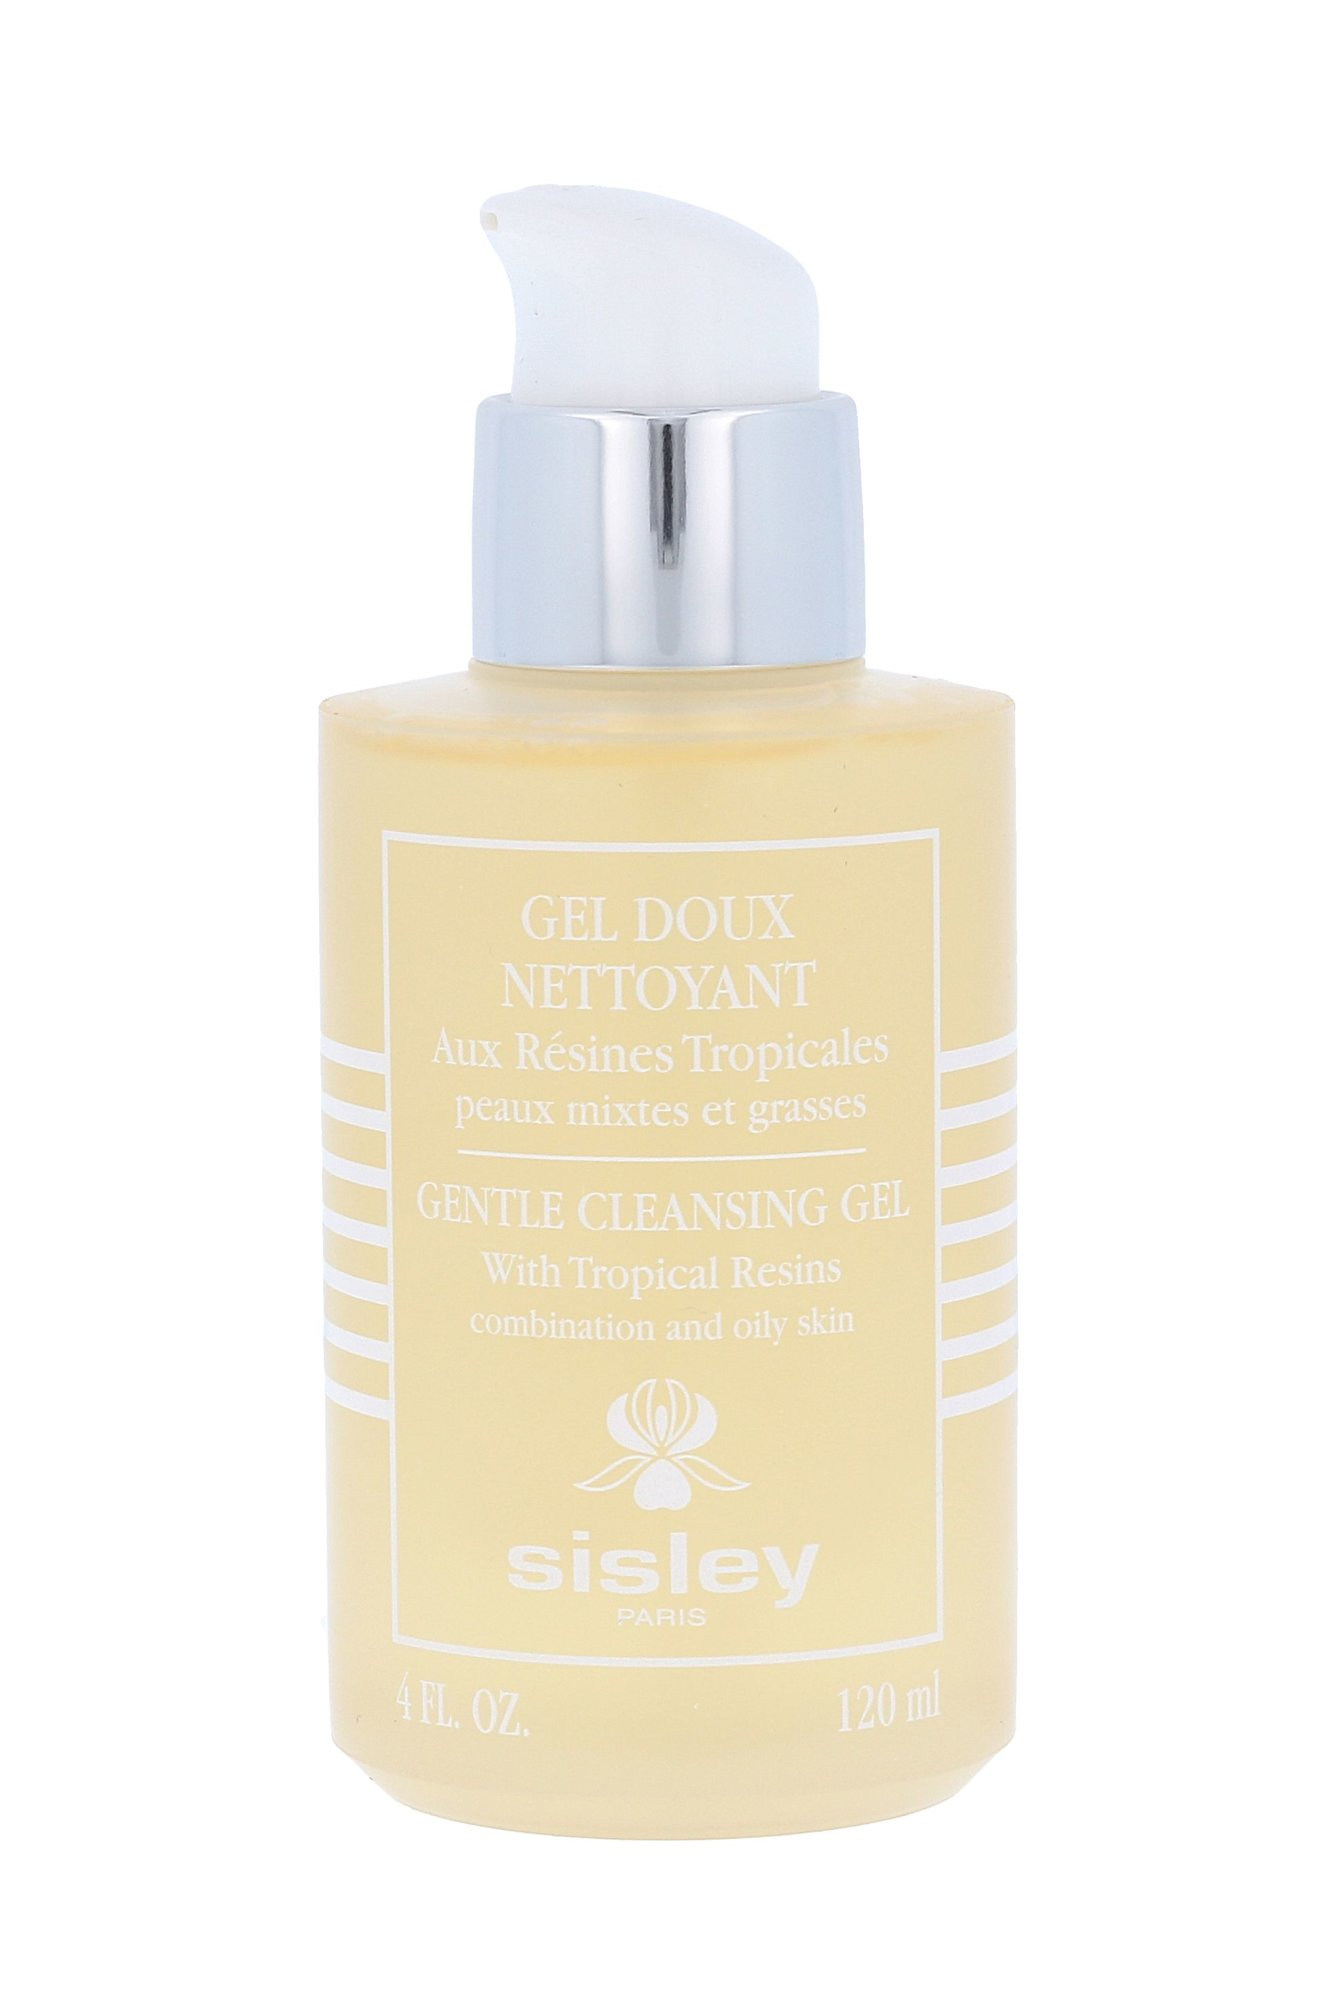 Sisley Gentle Cleansing Gel Cosmetic 120ml